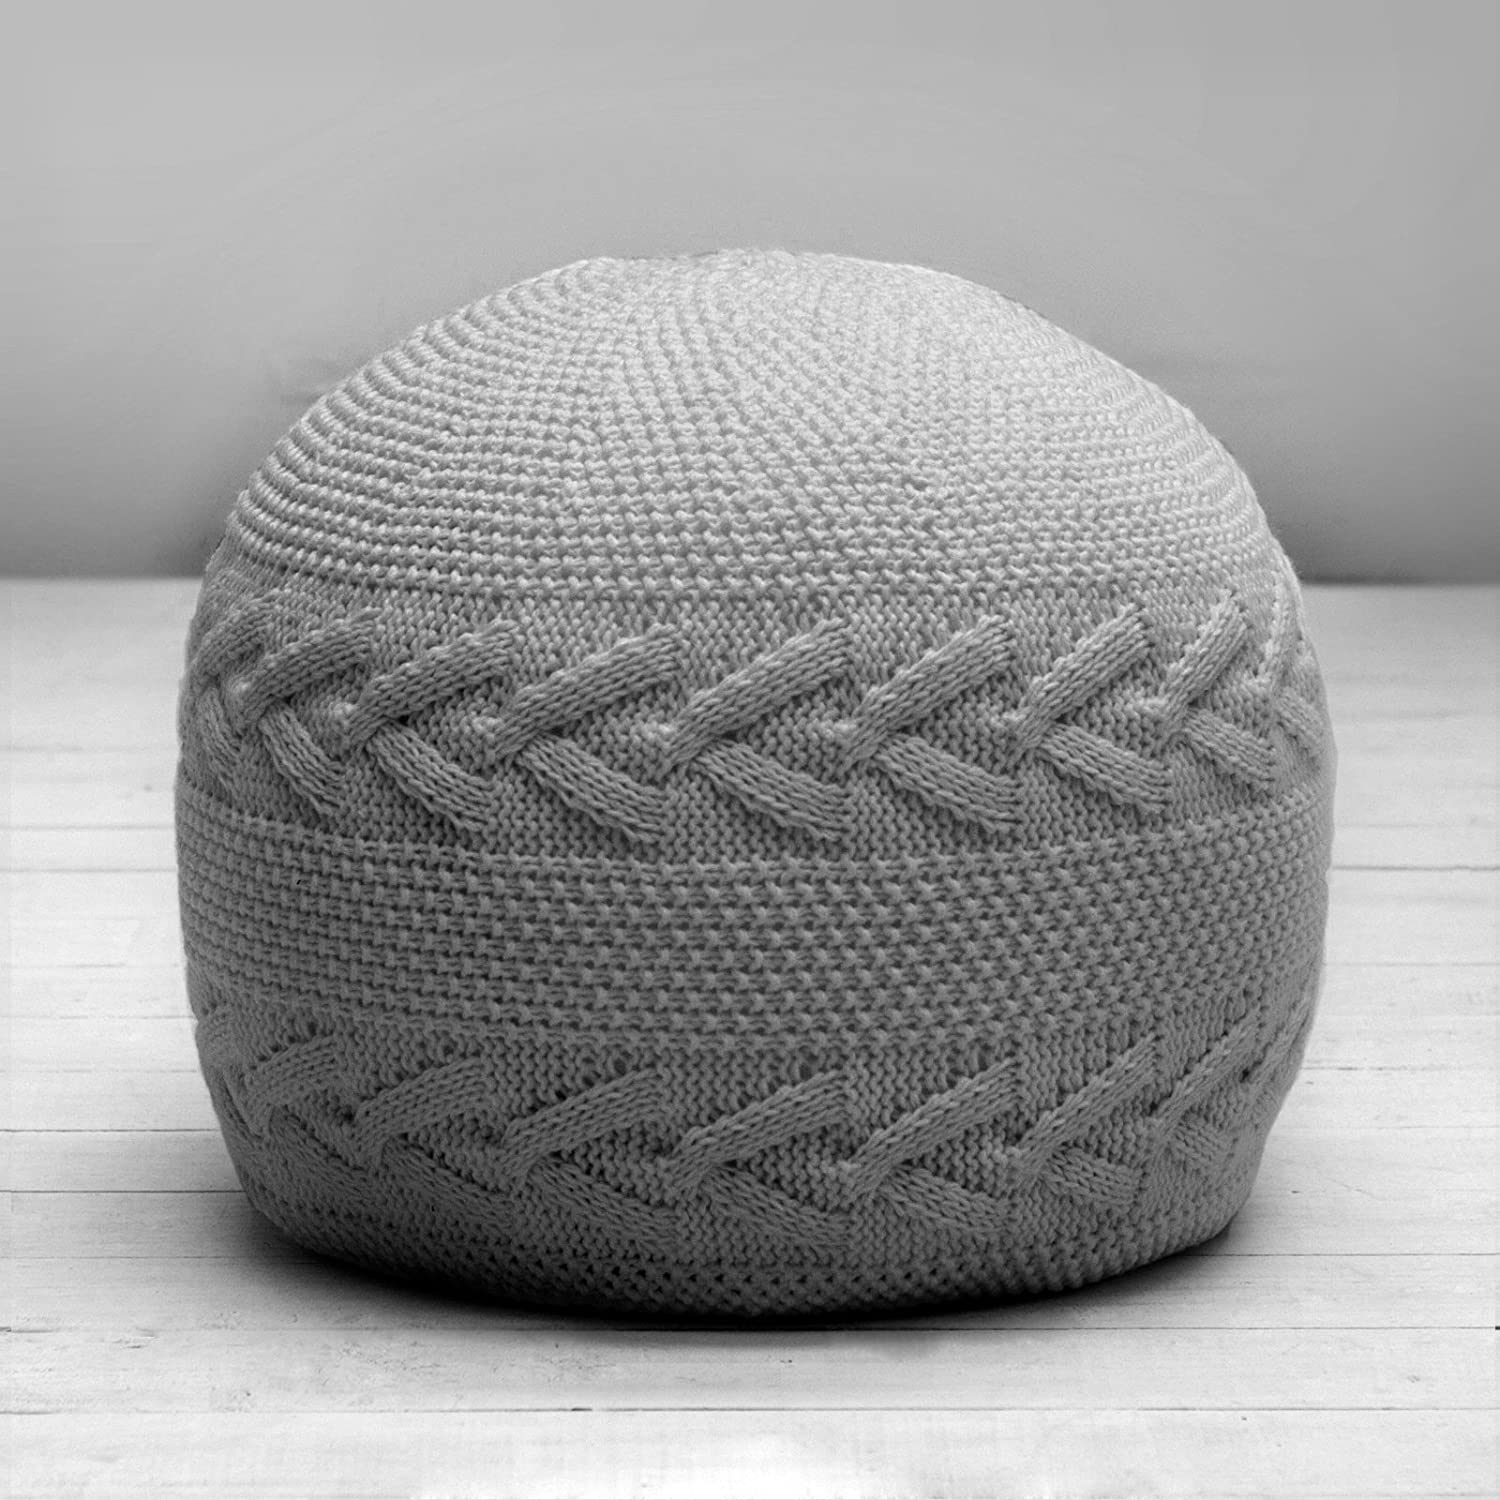 Knitted Round Grey Footstool Seat Pouffe Bean Bag Beanbag Filled With  Beans: Amazon.co.uk: Kitchen U0026 Home